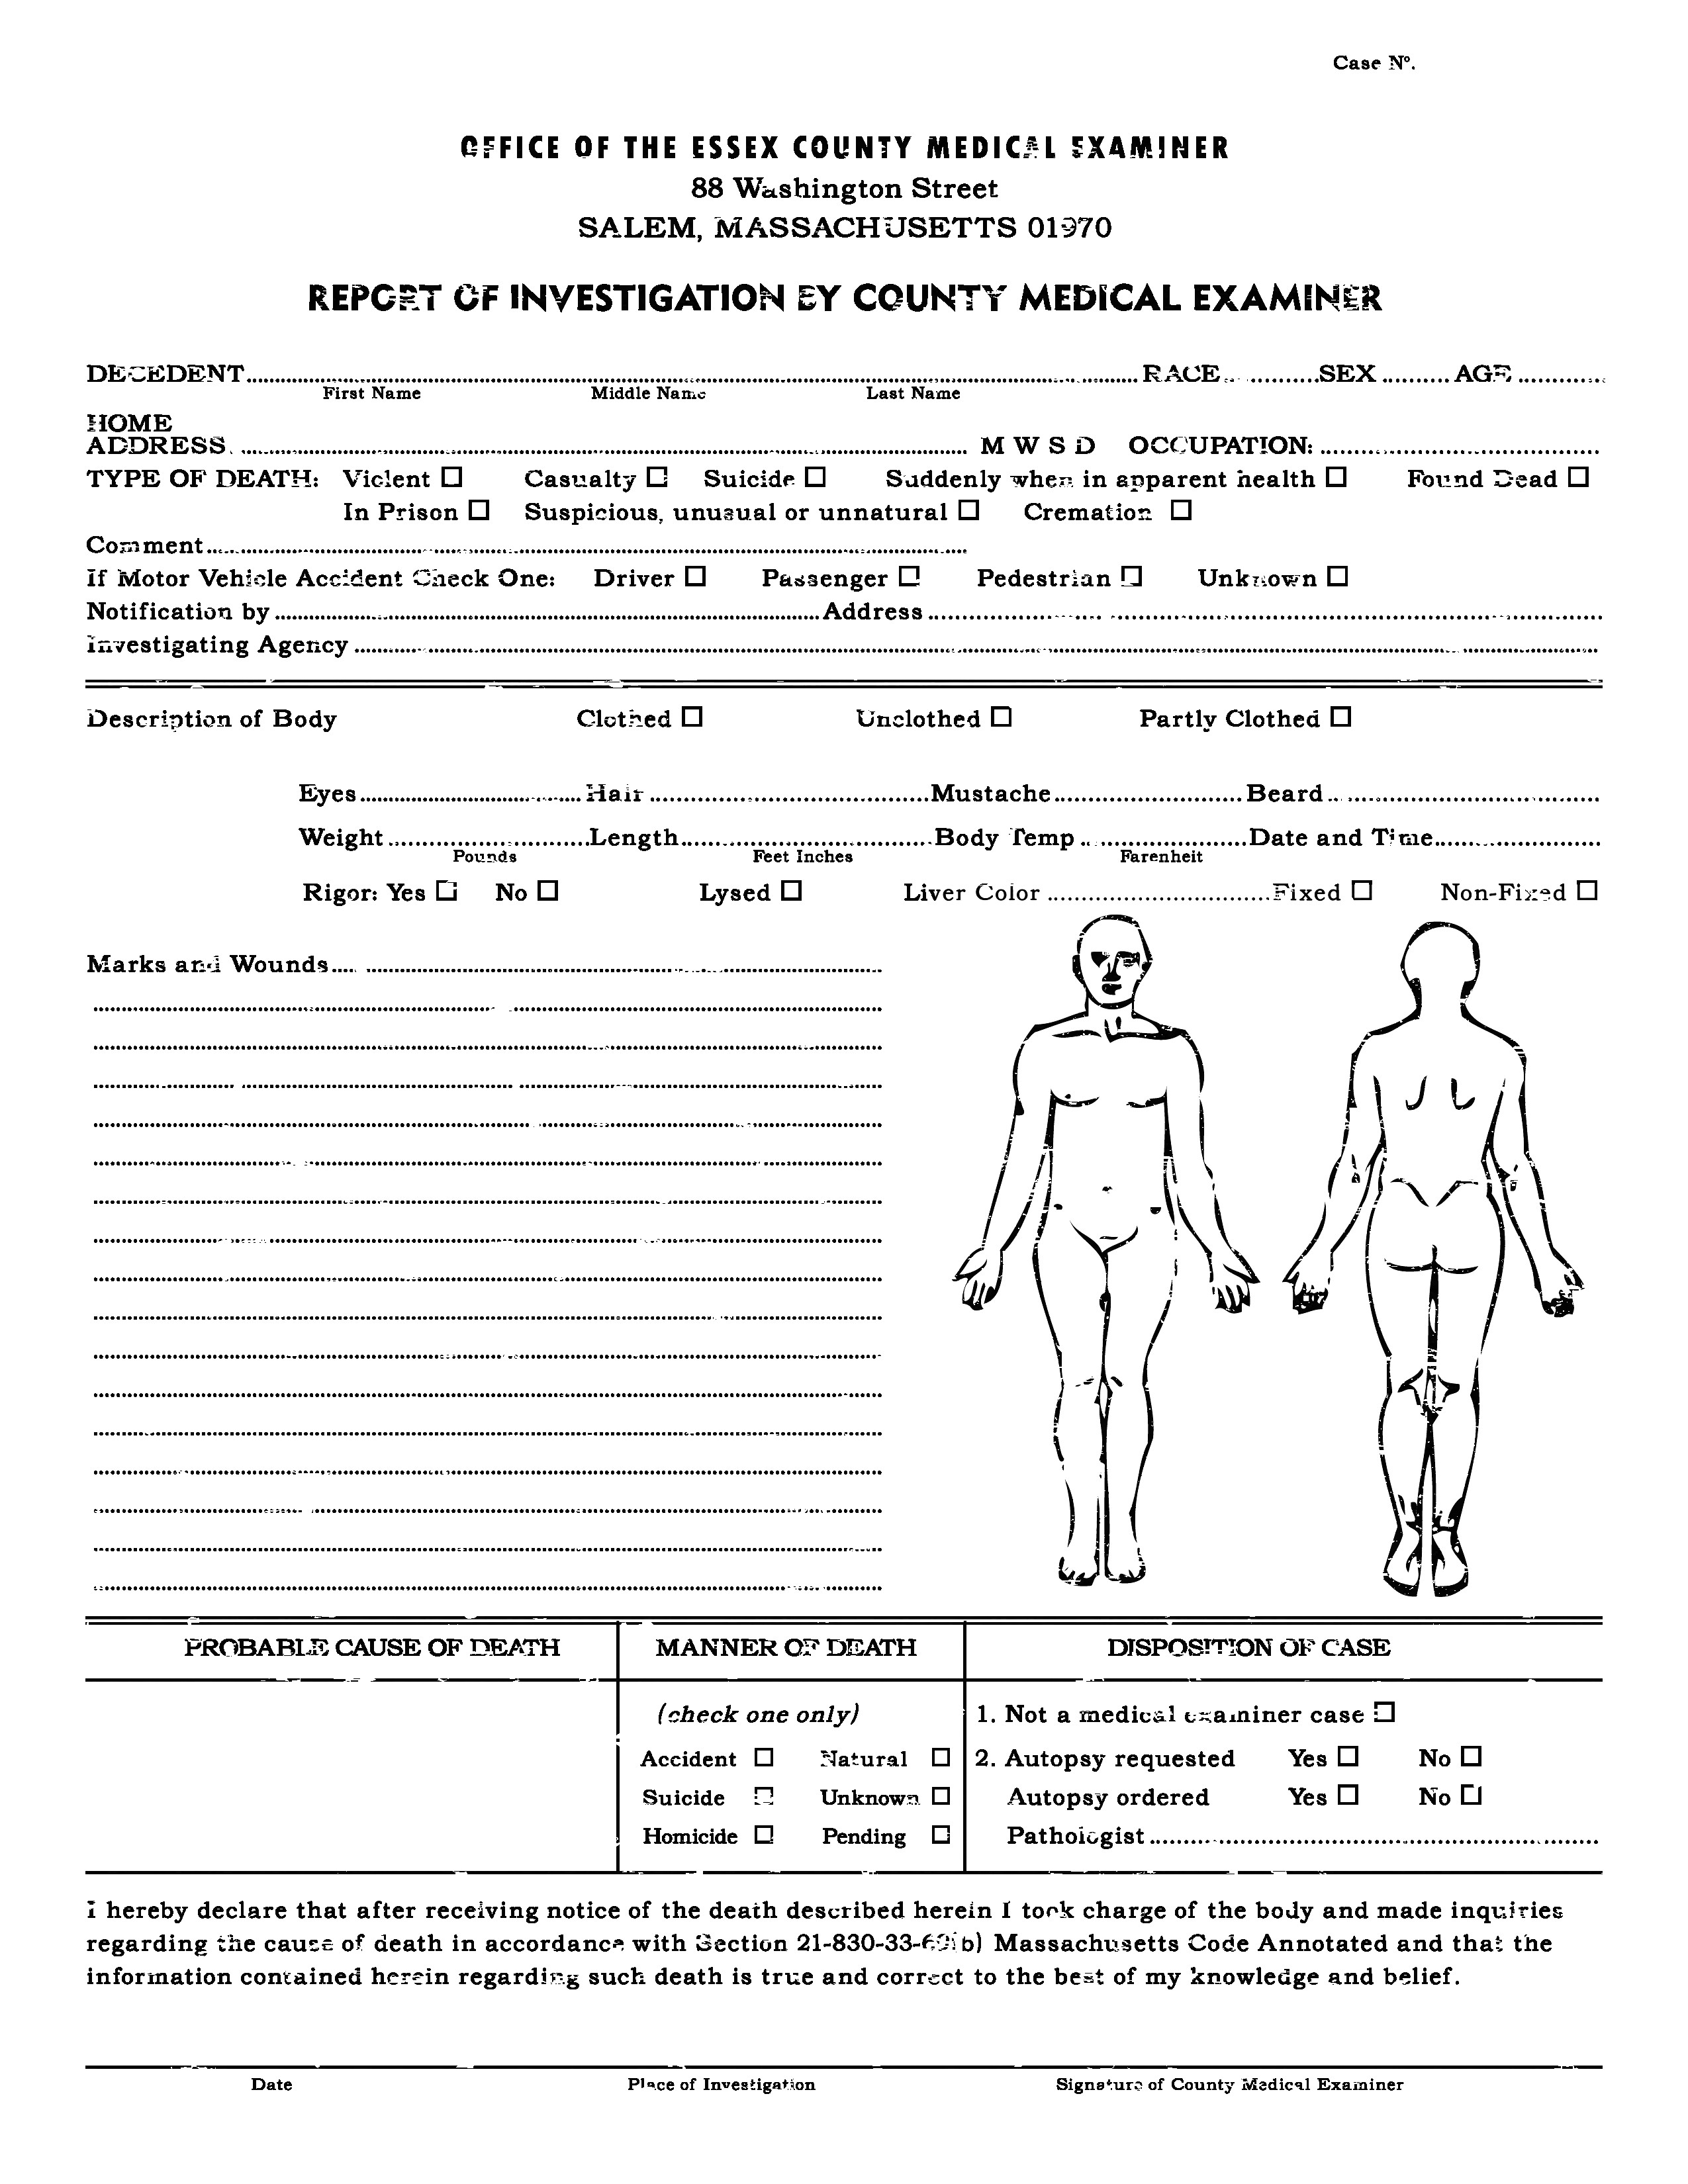 Autopsy Report Template - Atlantaauctionco In Blank Autopsy Report Template